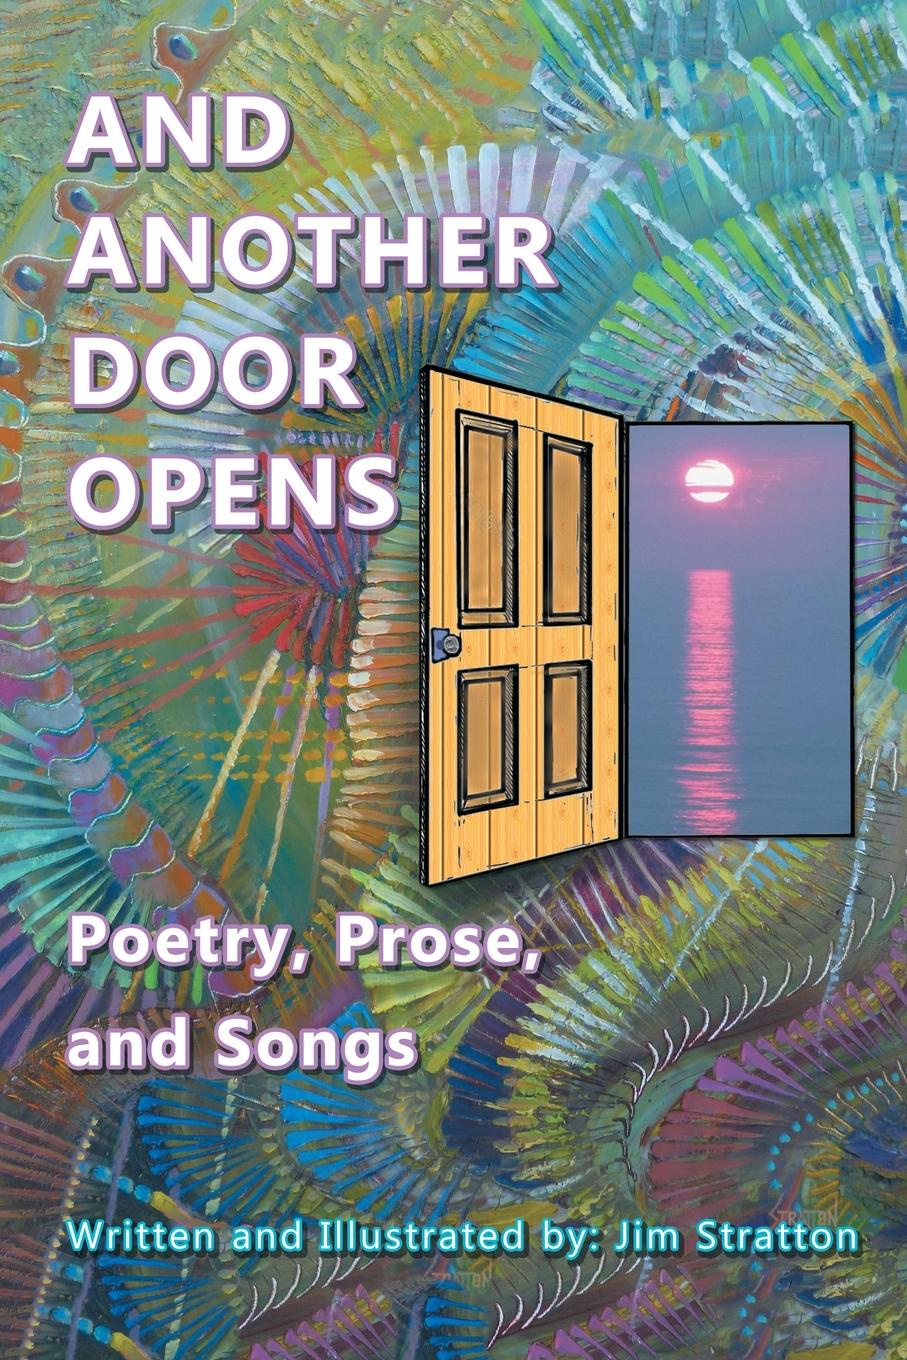 Jim Stratton And Another Door Opens. Poetry, Prose, and Songs